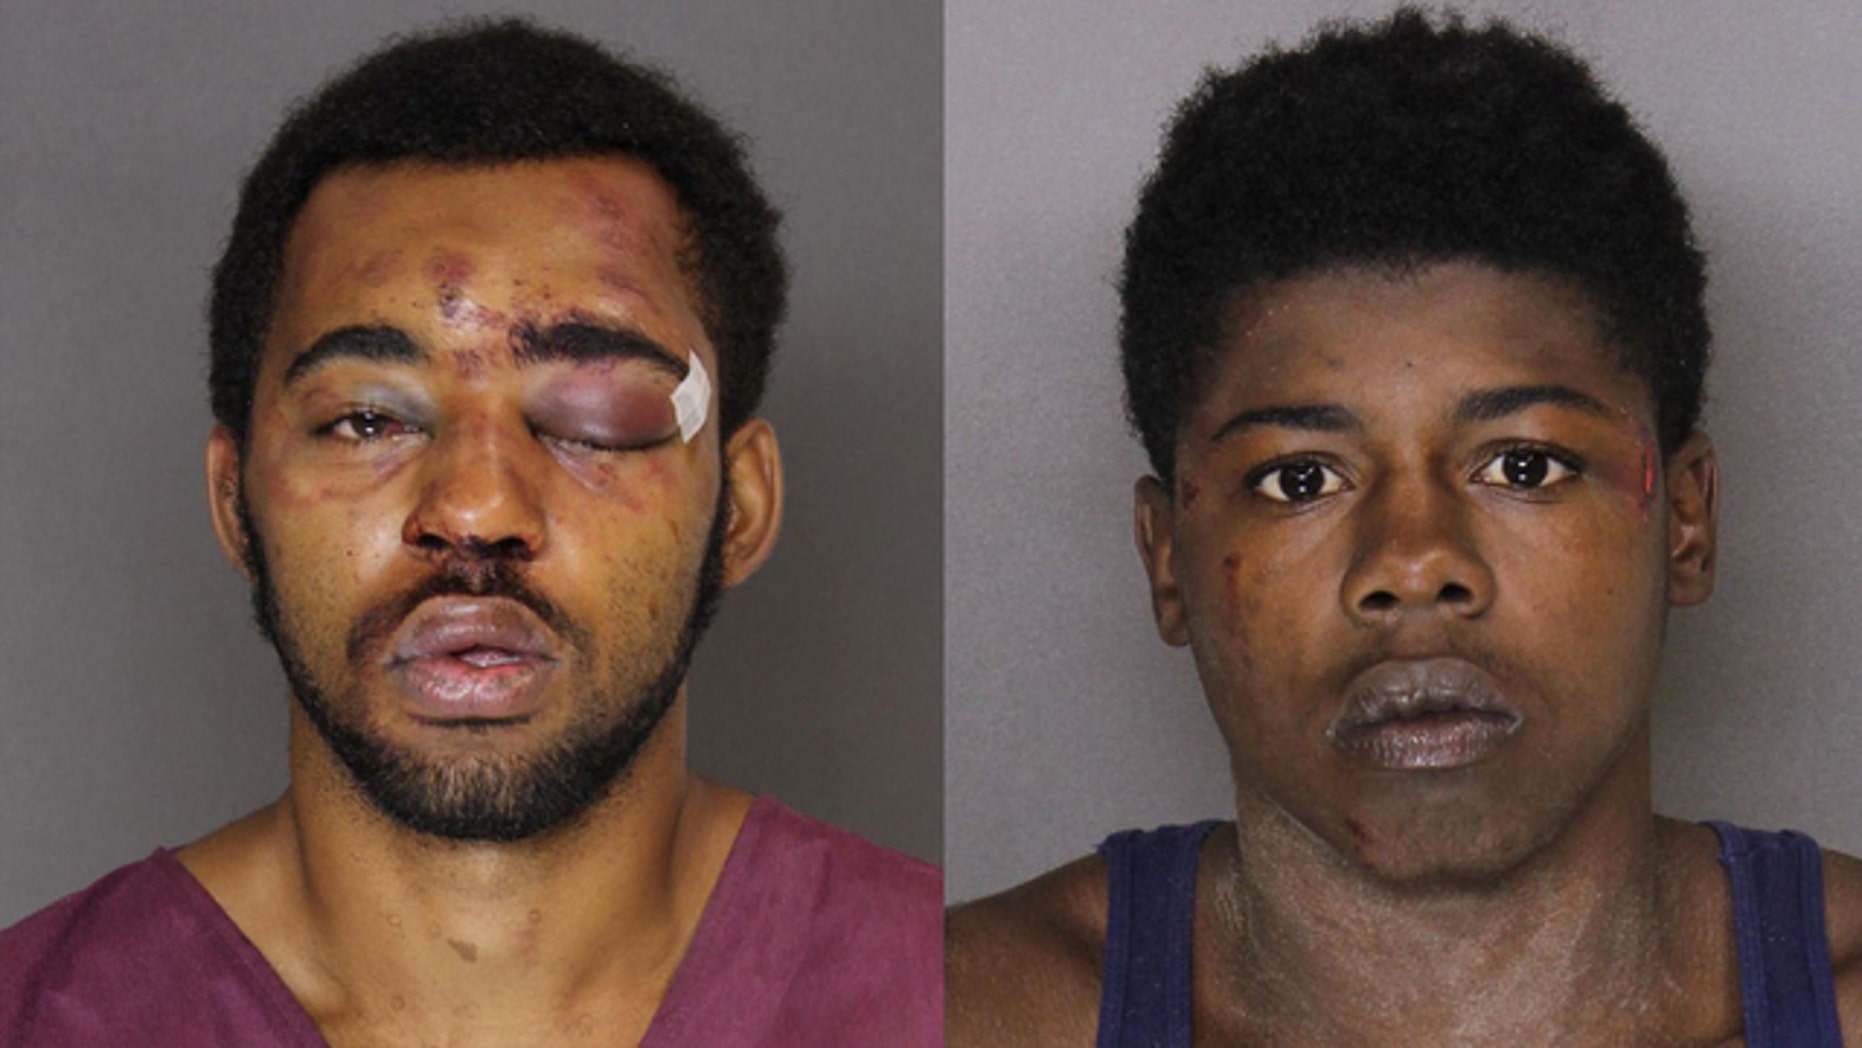 Tyree McCoy, left, and Joseph McInnis III were arrested for an alleged attempted robbery.